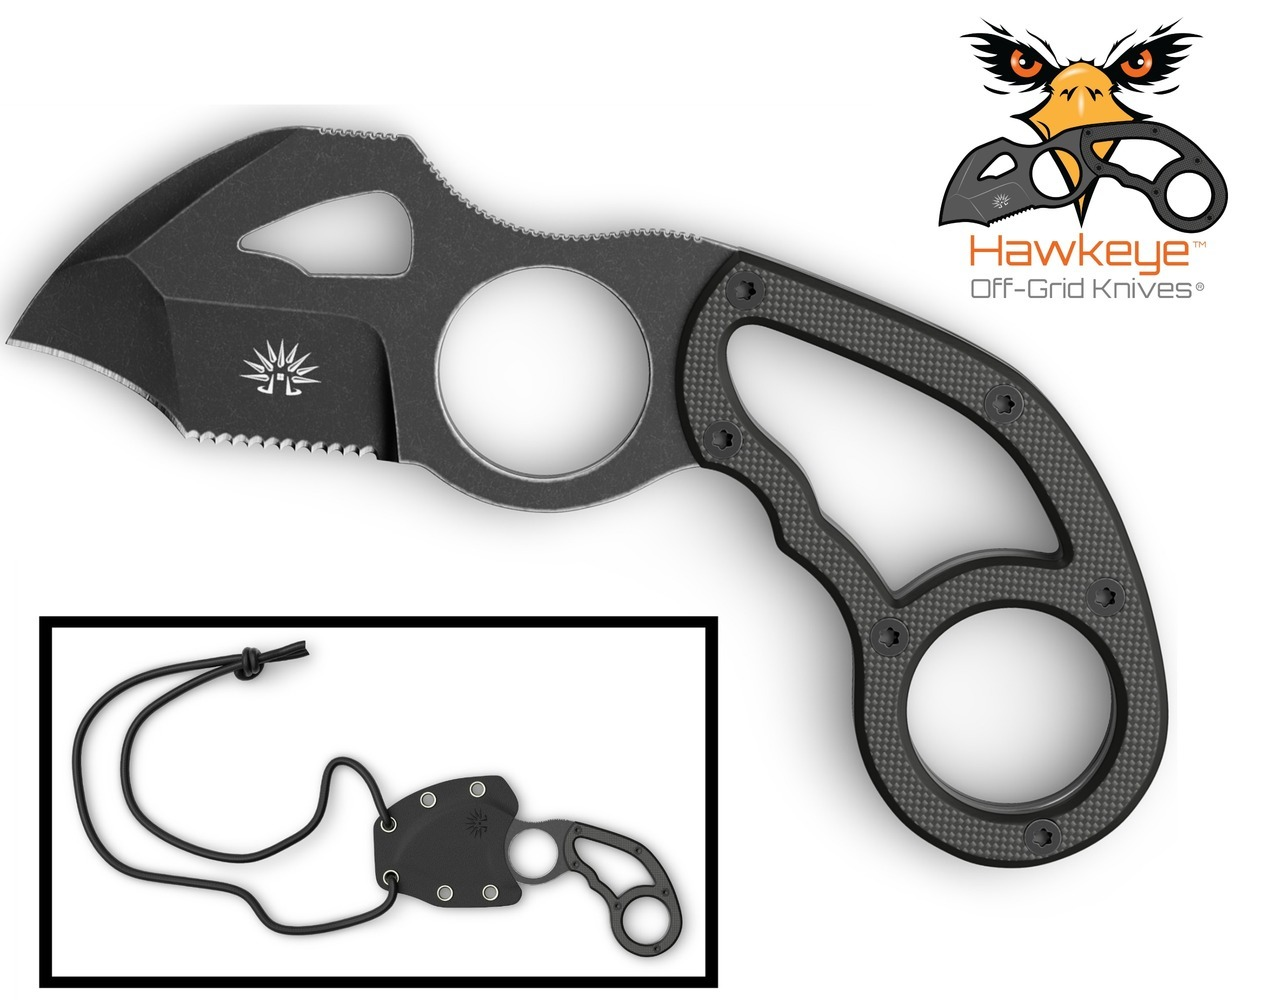 spring assisted karambit knife